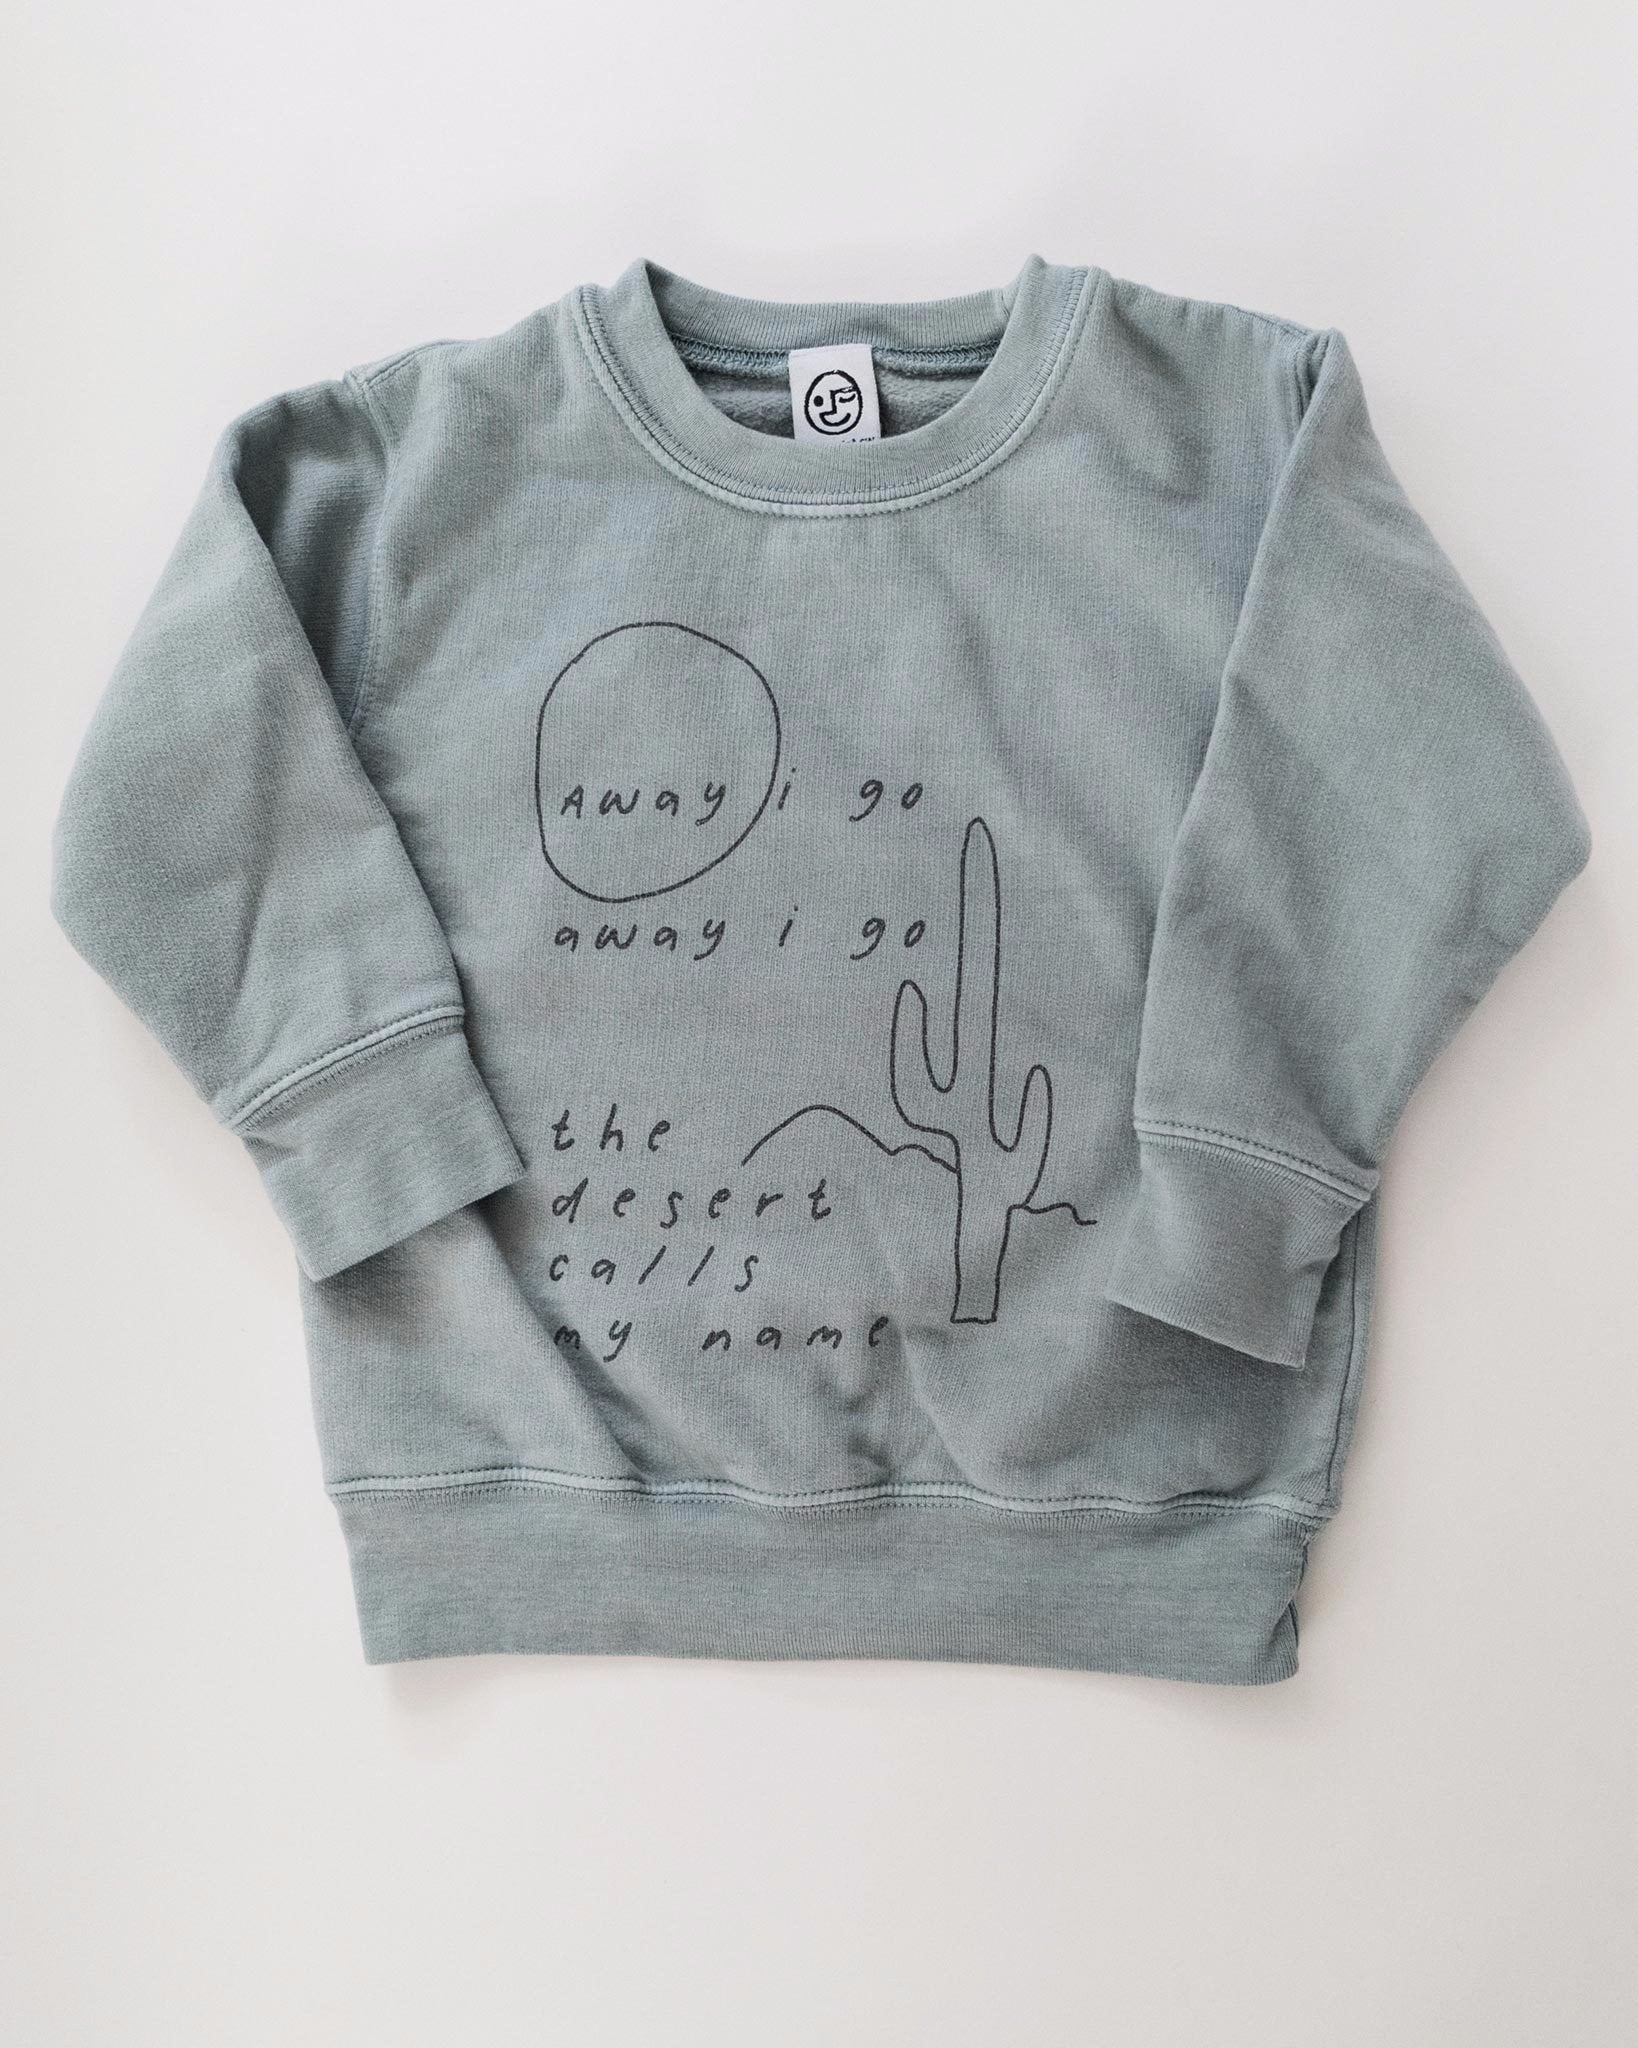 Desert Poem - Toddler Sweatshirt in Dusty Juniper